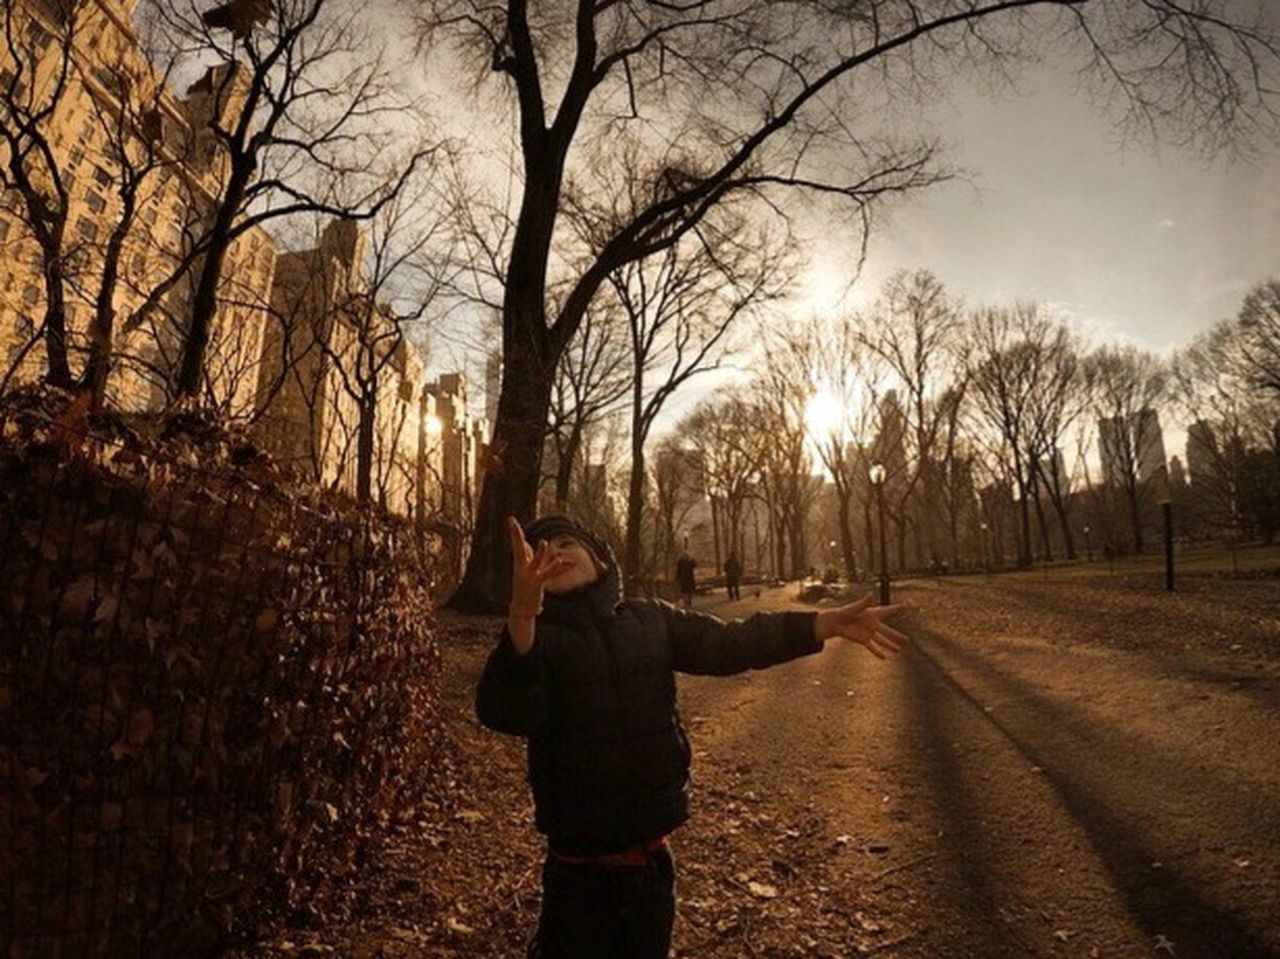 tree, bare tree, one person, standing, outdoors, nature, photographing, leisure activity, winter, real people, branch, lifestyles, photography themes, adult, night, people, young adult, adults only, one man only, sky, warm clothing, only men